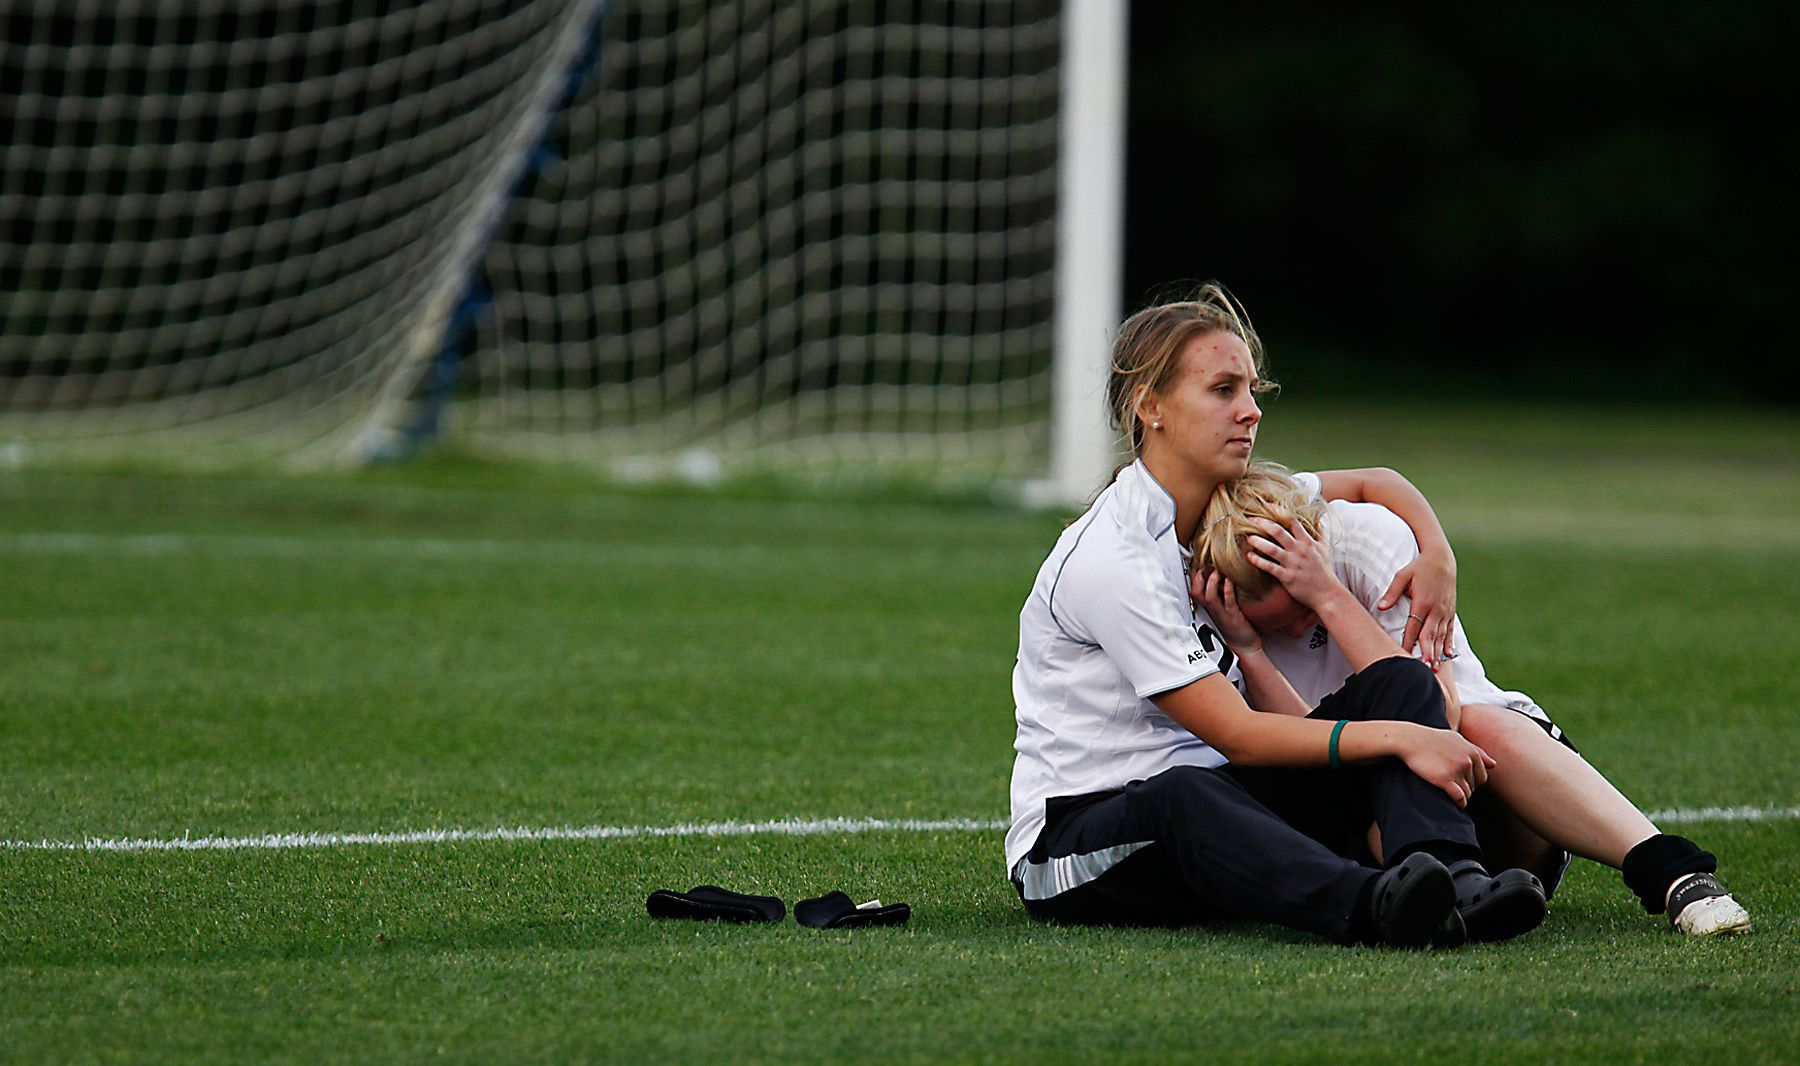 Waccamaw girl's soccer player Abby Weimer,12, (left) consoles teammate Callie Dennis, 11, after the Warriors lost 1-0 to Bishop England High School in the Lower State Championship game held at Waccamaw.